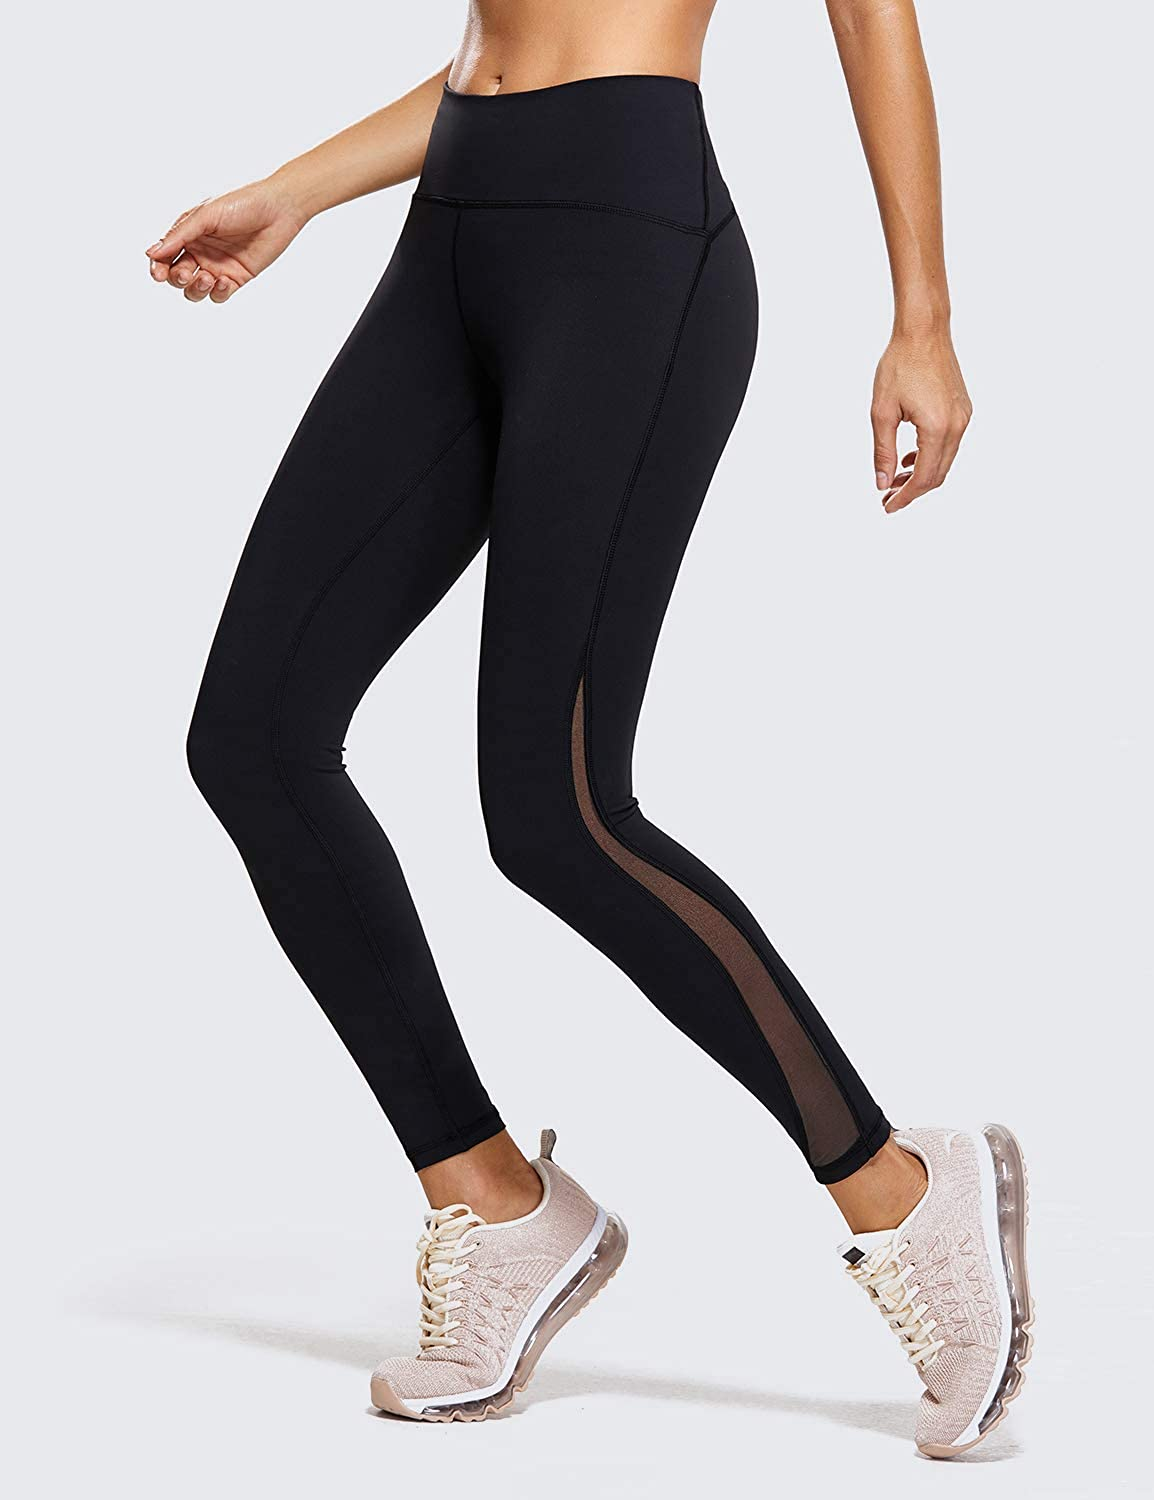 CRZ YOGA Naked Feeling High Waist 7//8 Leggings Mesh Yoga Tight Workout Leggings with Zip Pocket-25 Inches